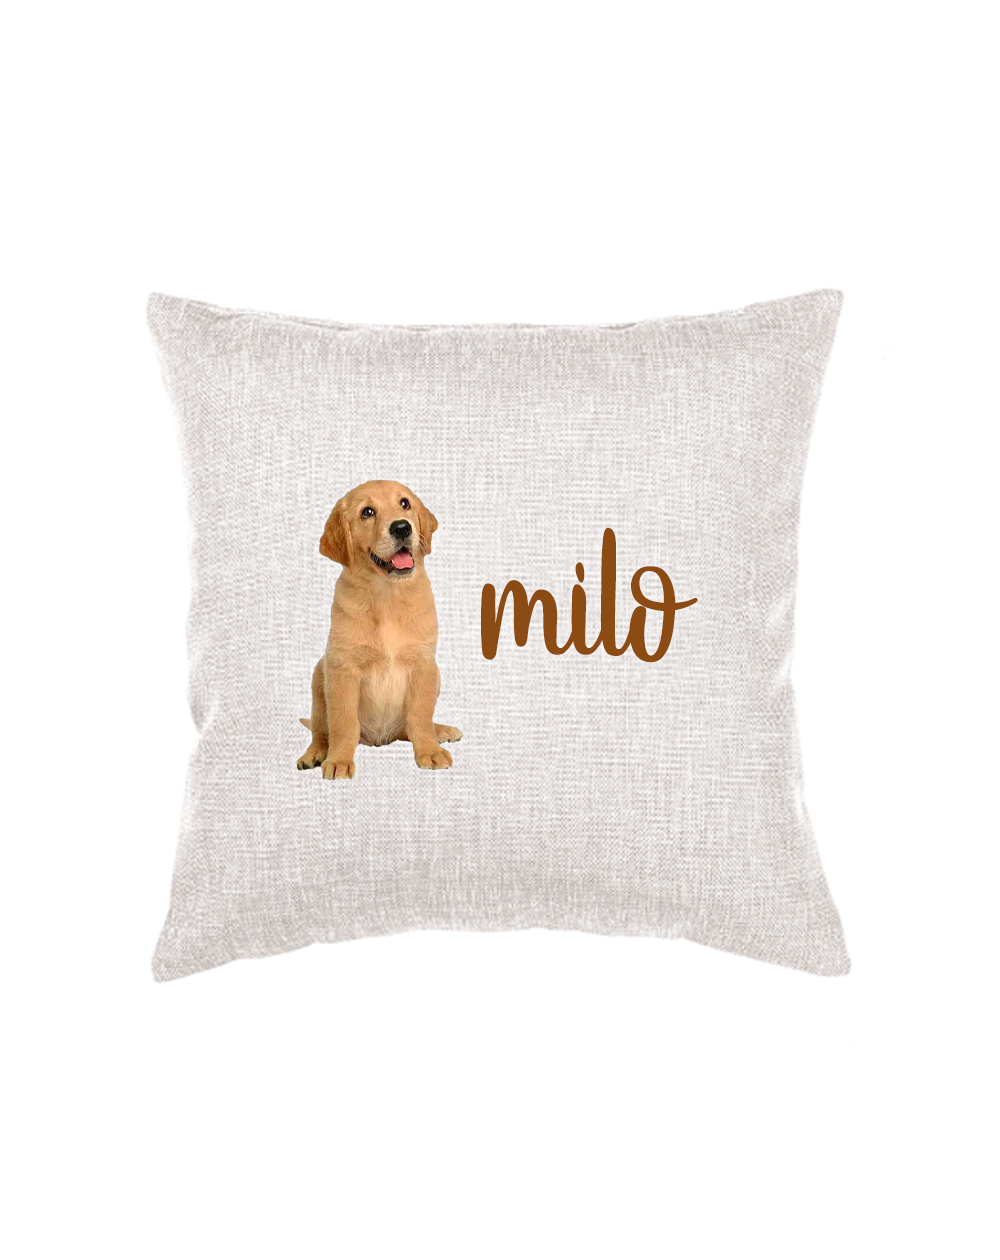 Throw Pillow with Dog Photo